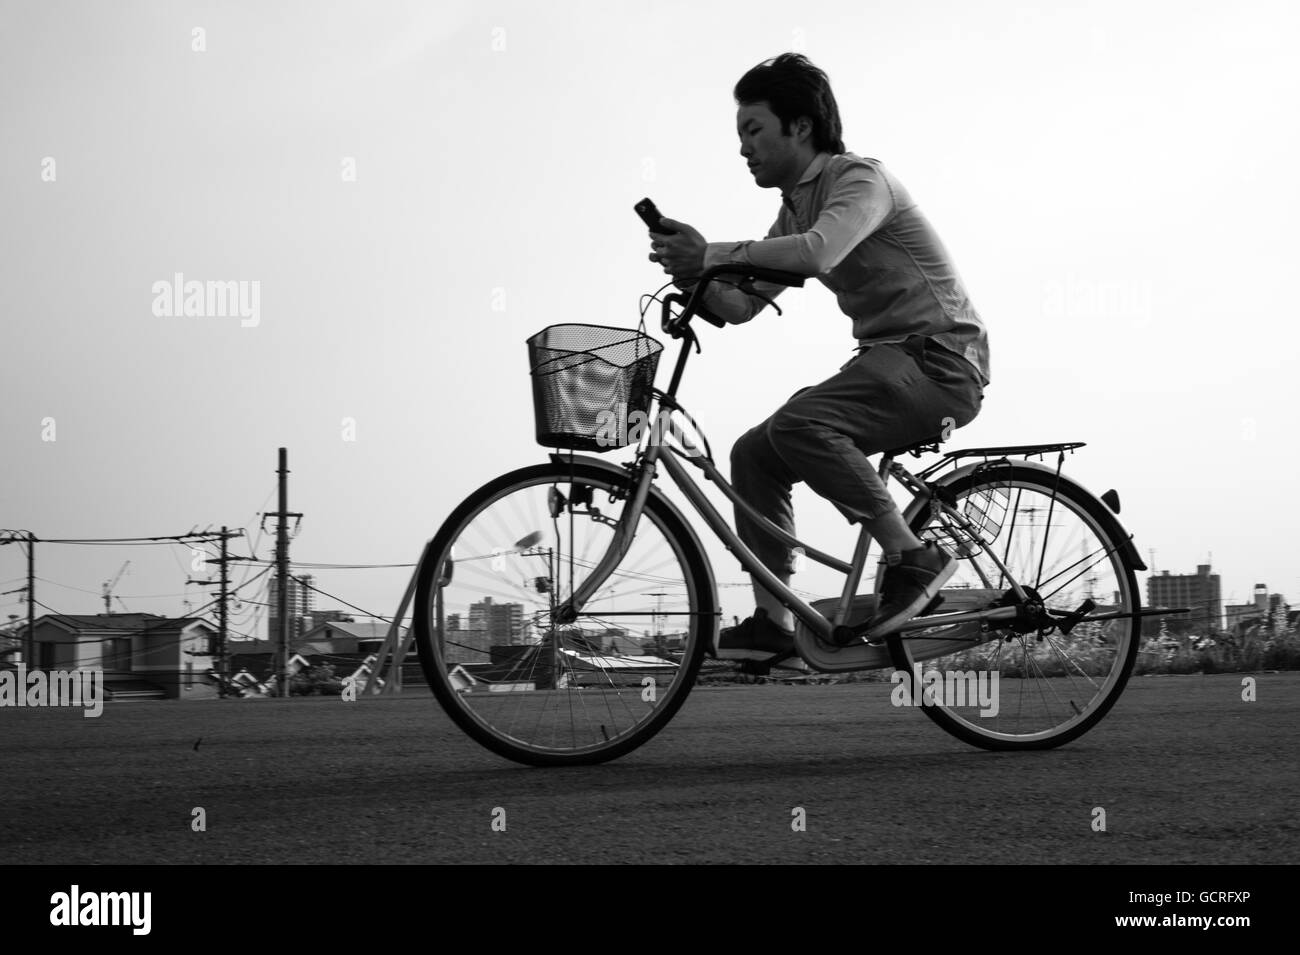 cycling-and-texting-in-tokyo-GCRFXP.jpg